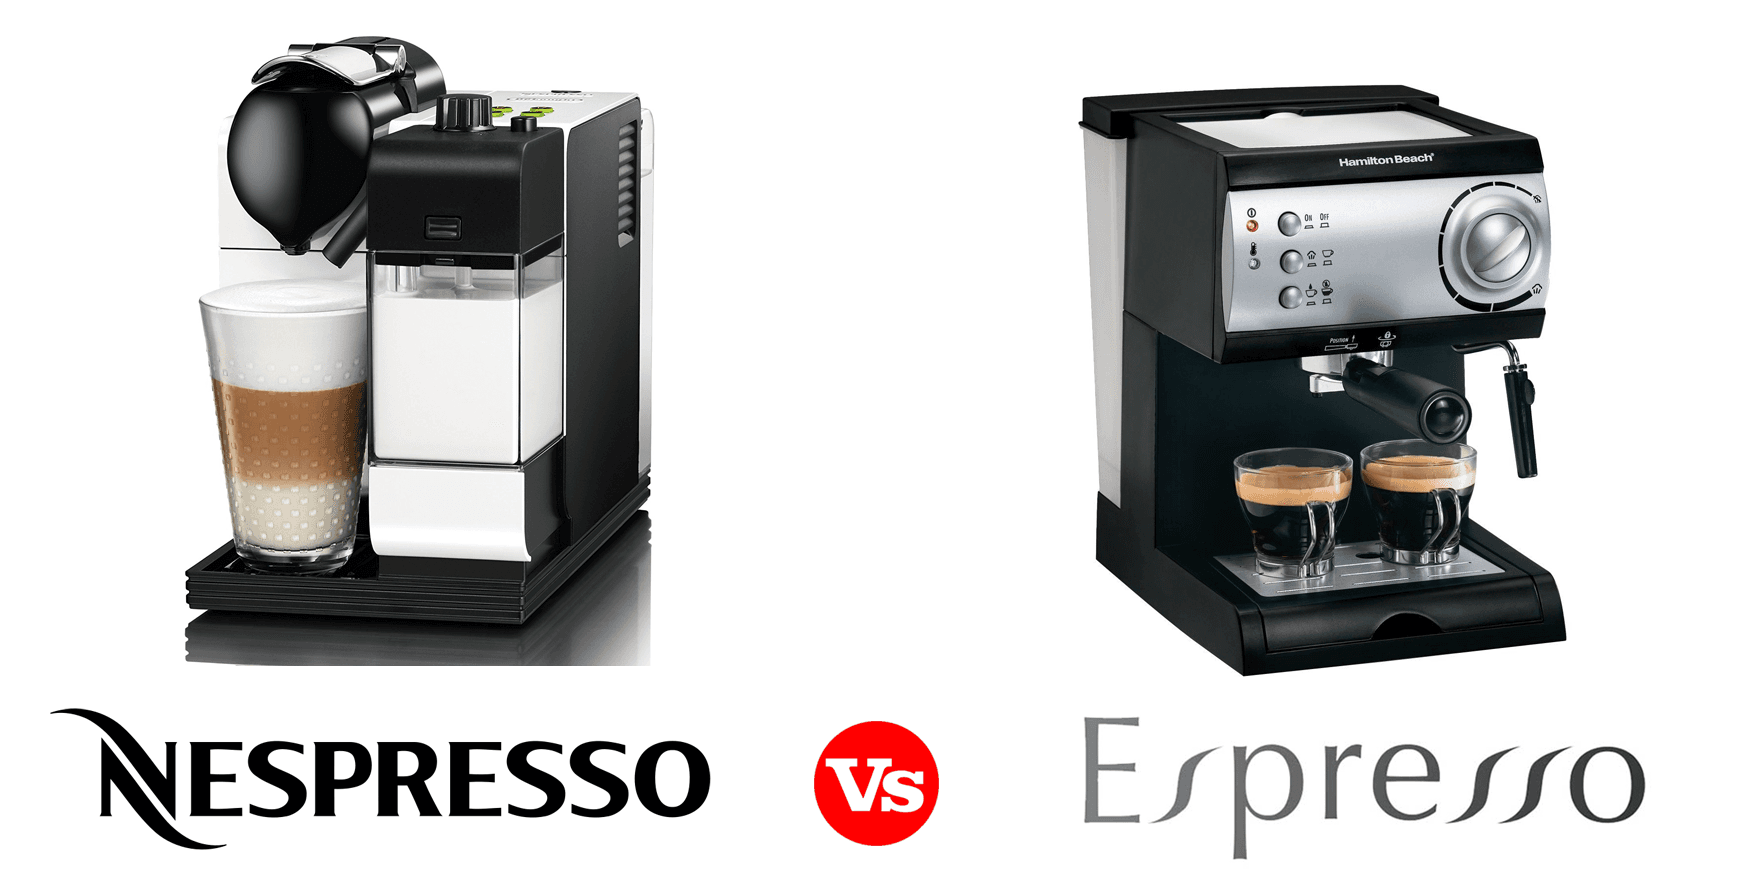 The-difference-between-a-Nespresso-and-espresso-machine